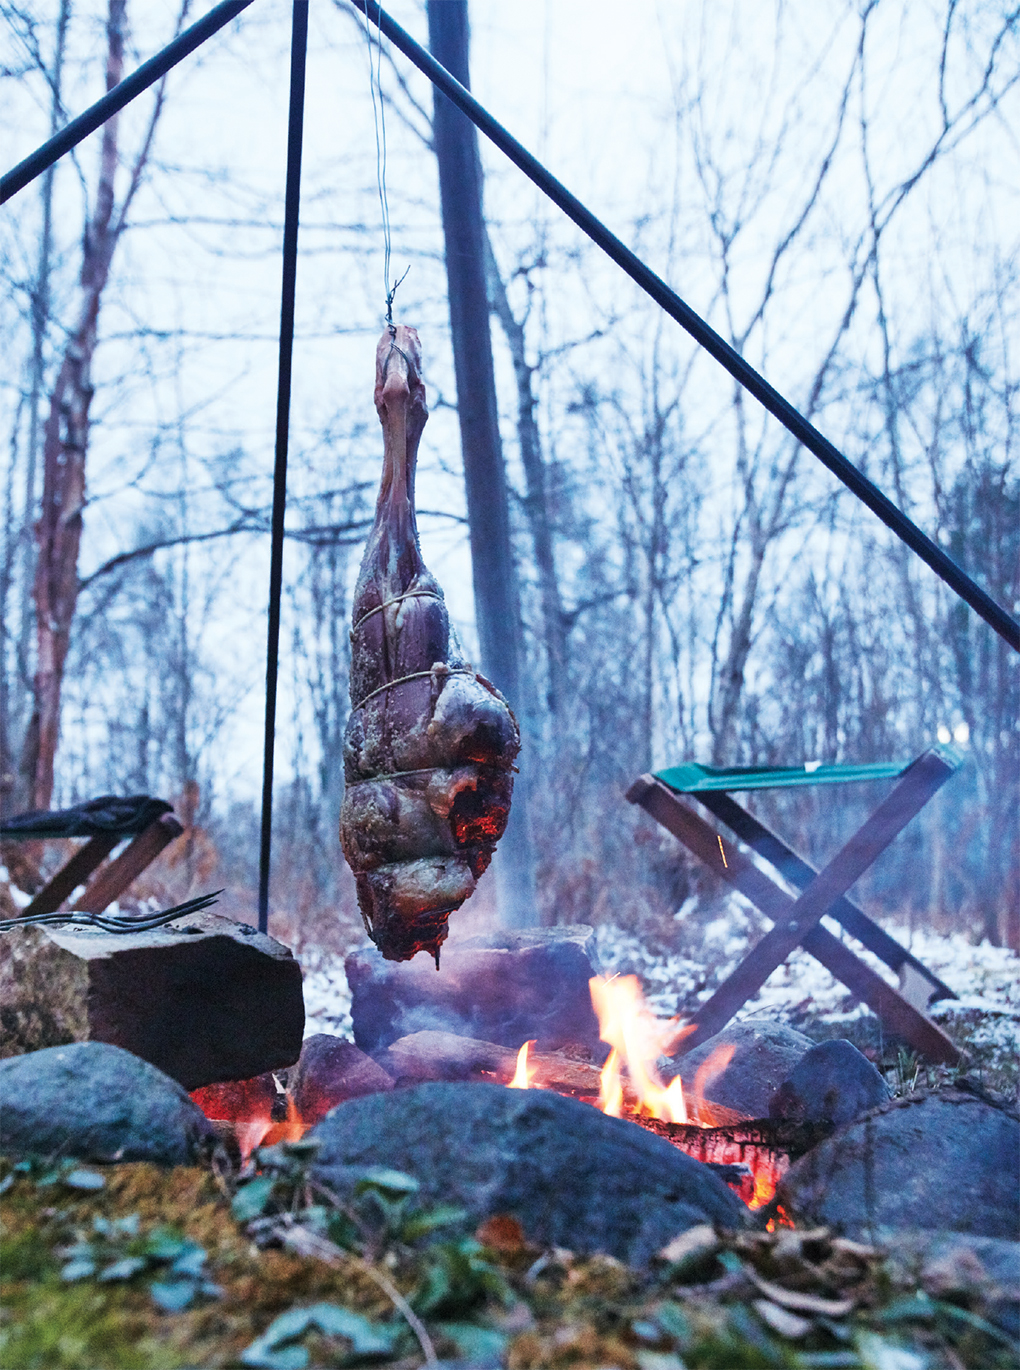 Leg of lamb suspended over fire